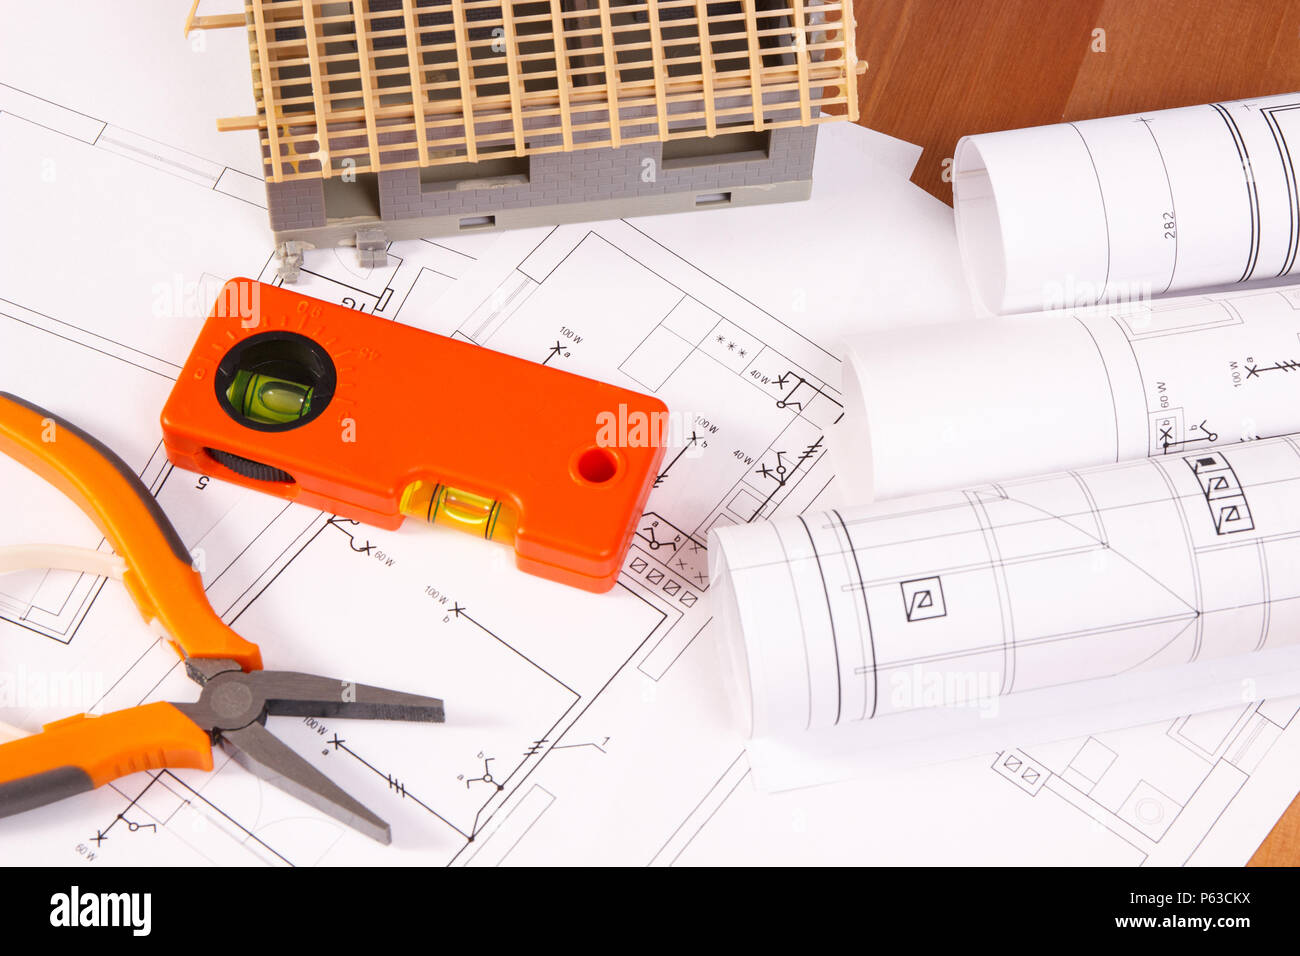 Electrical Drawings Or Diagrams Orange Work Tools For Engineer Jobs Diagram Building And House Under Construction Concept Of Home